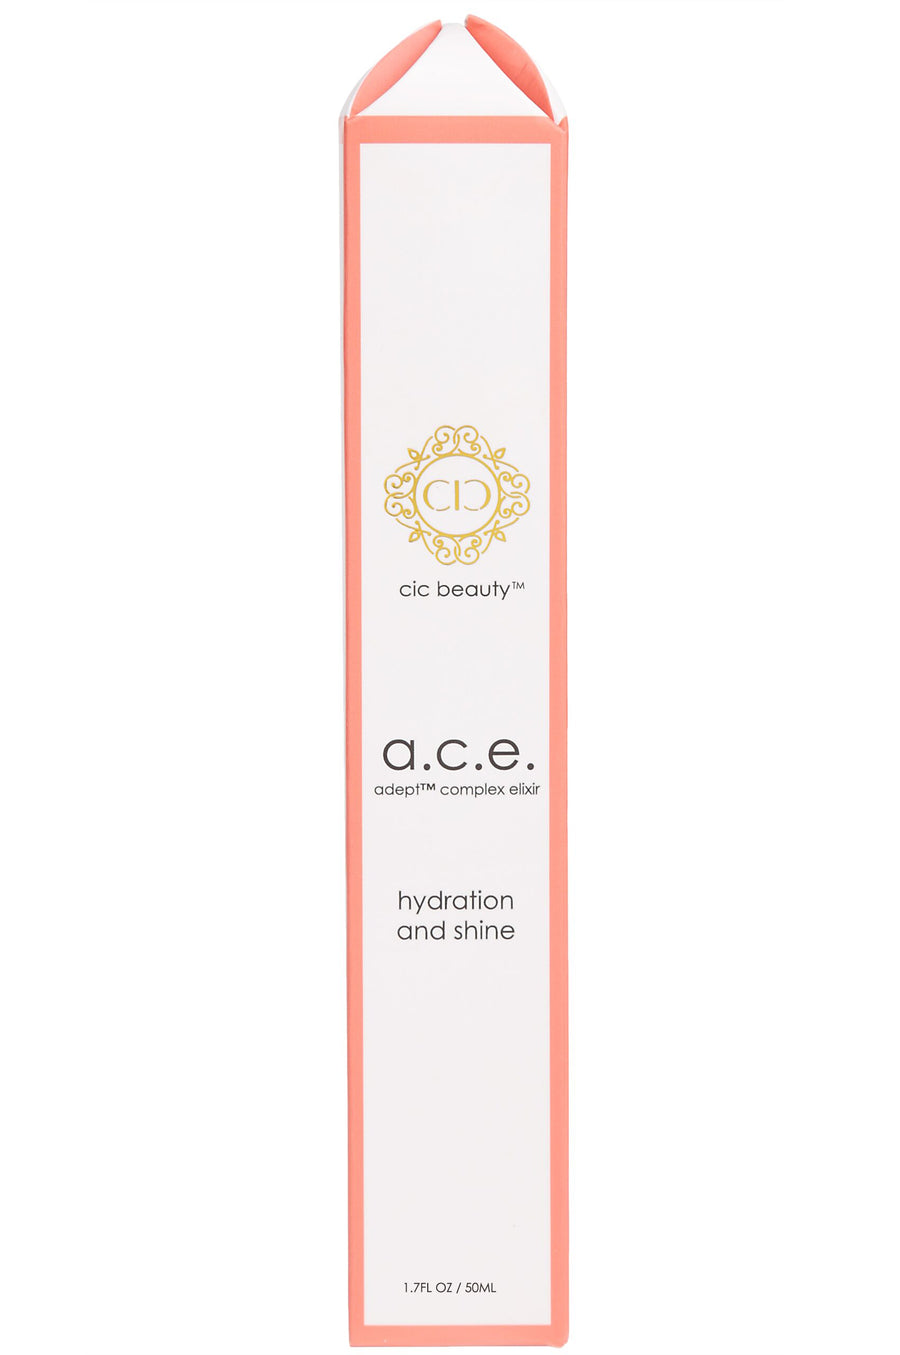 a.c.e (A.d.e.p.t® Complex Elixir) Hydration and Shine Refill Re-Style / Hydrate / Fragrance